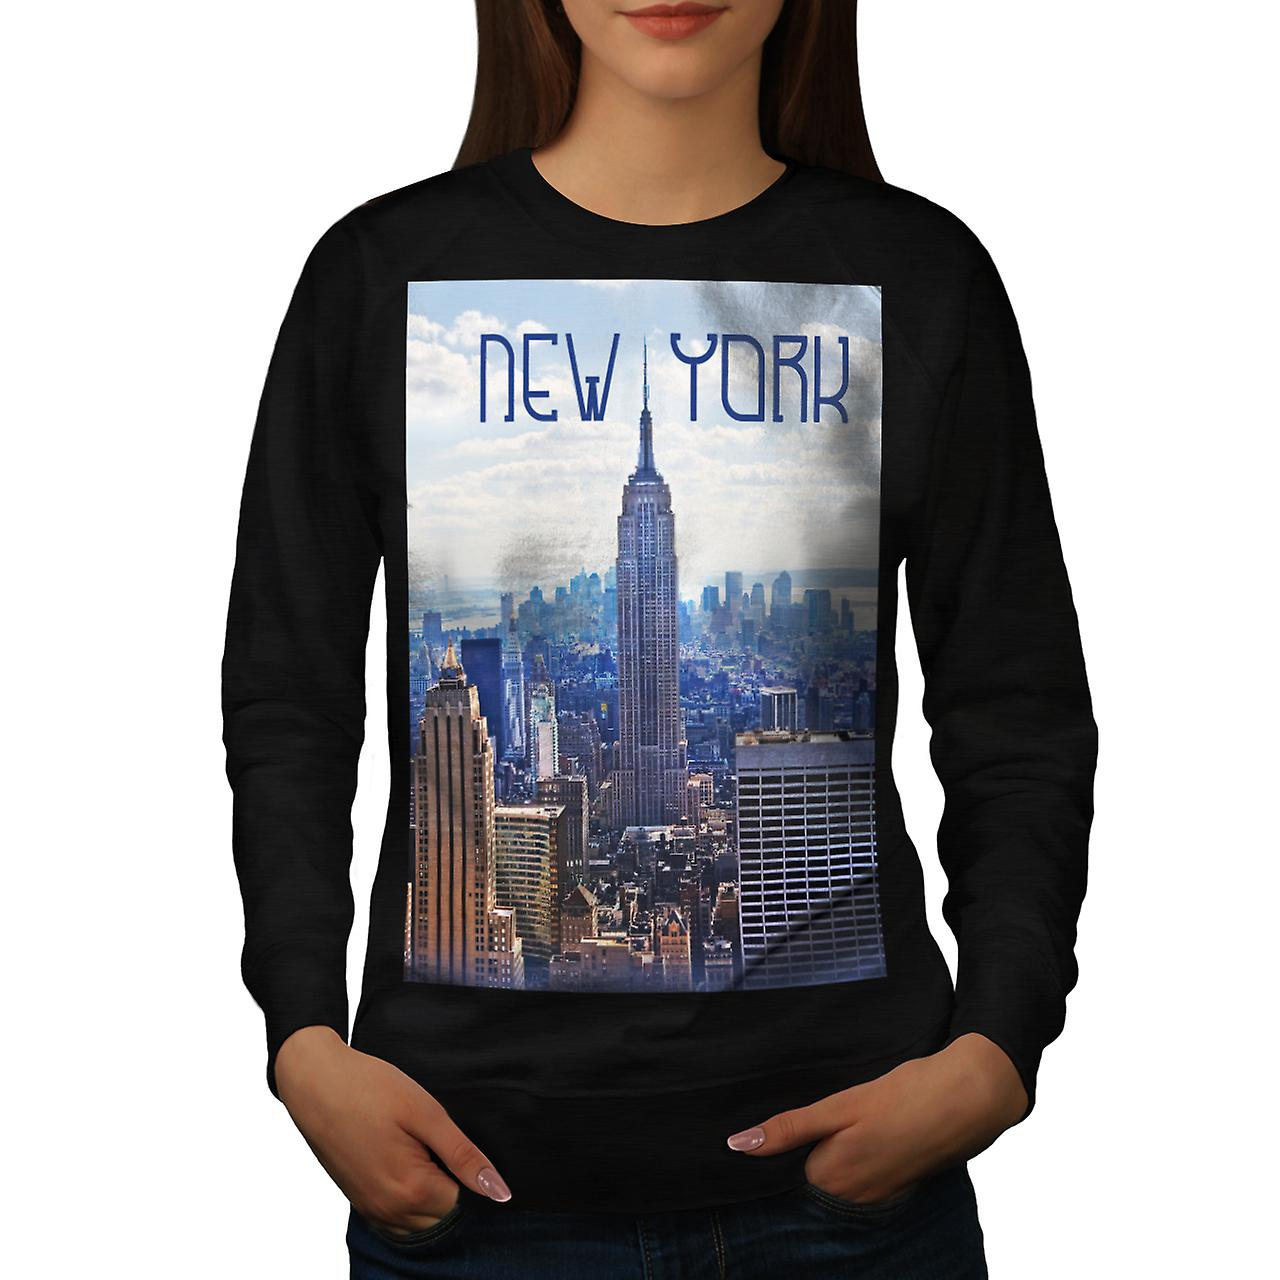 New York City NYC USA Urban Life Women Black Sweatshirt | Wellcoda